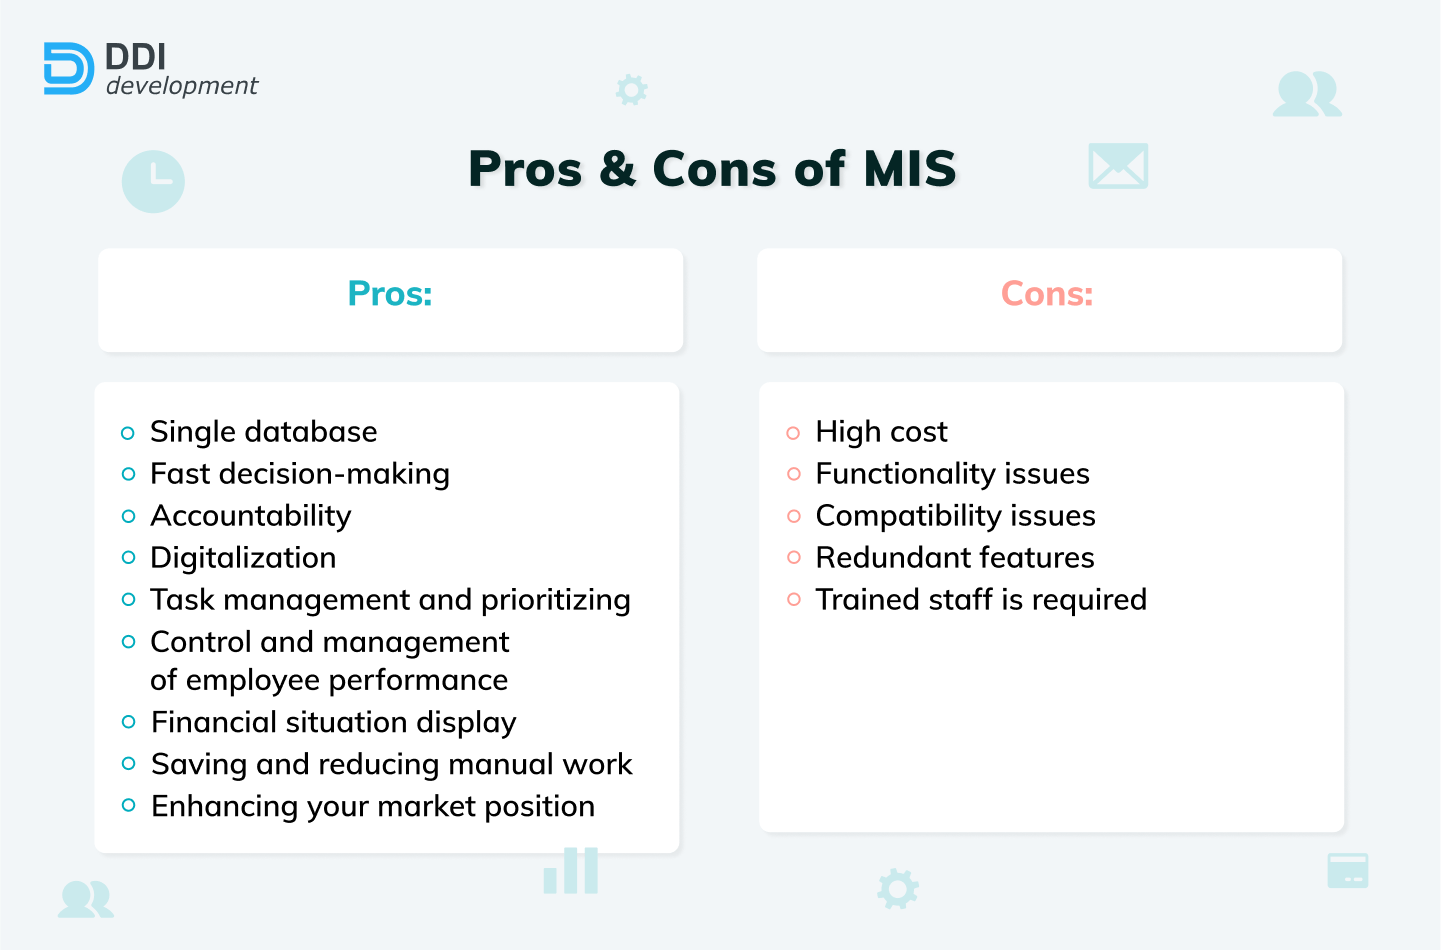 Pros and Cons of MIS